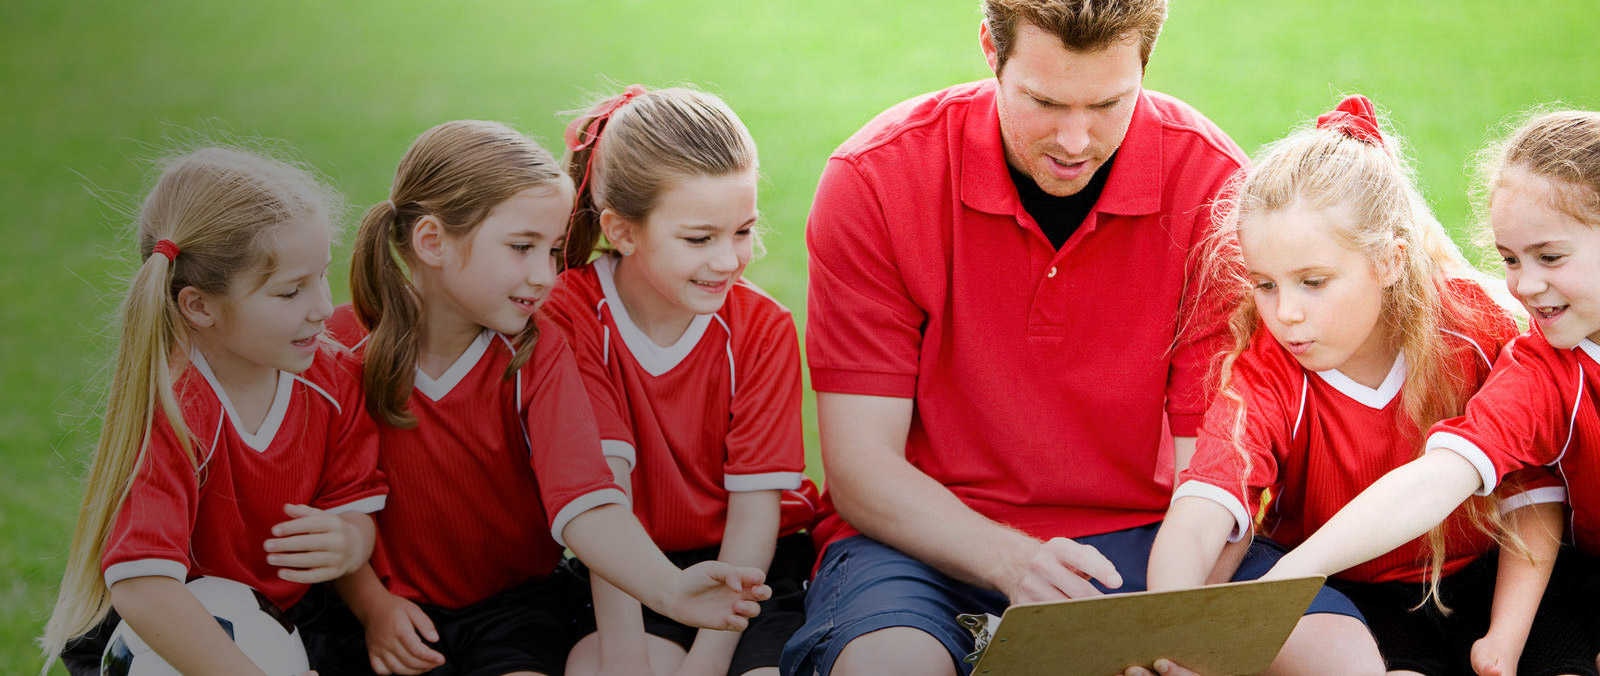 Health and physical education | Deakin